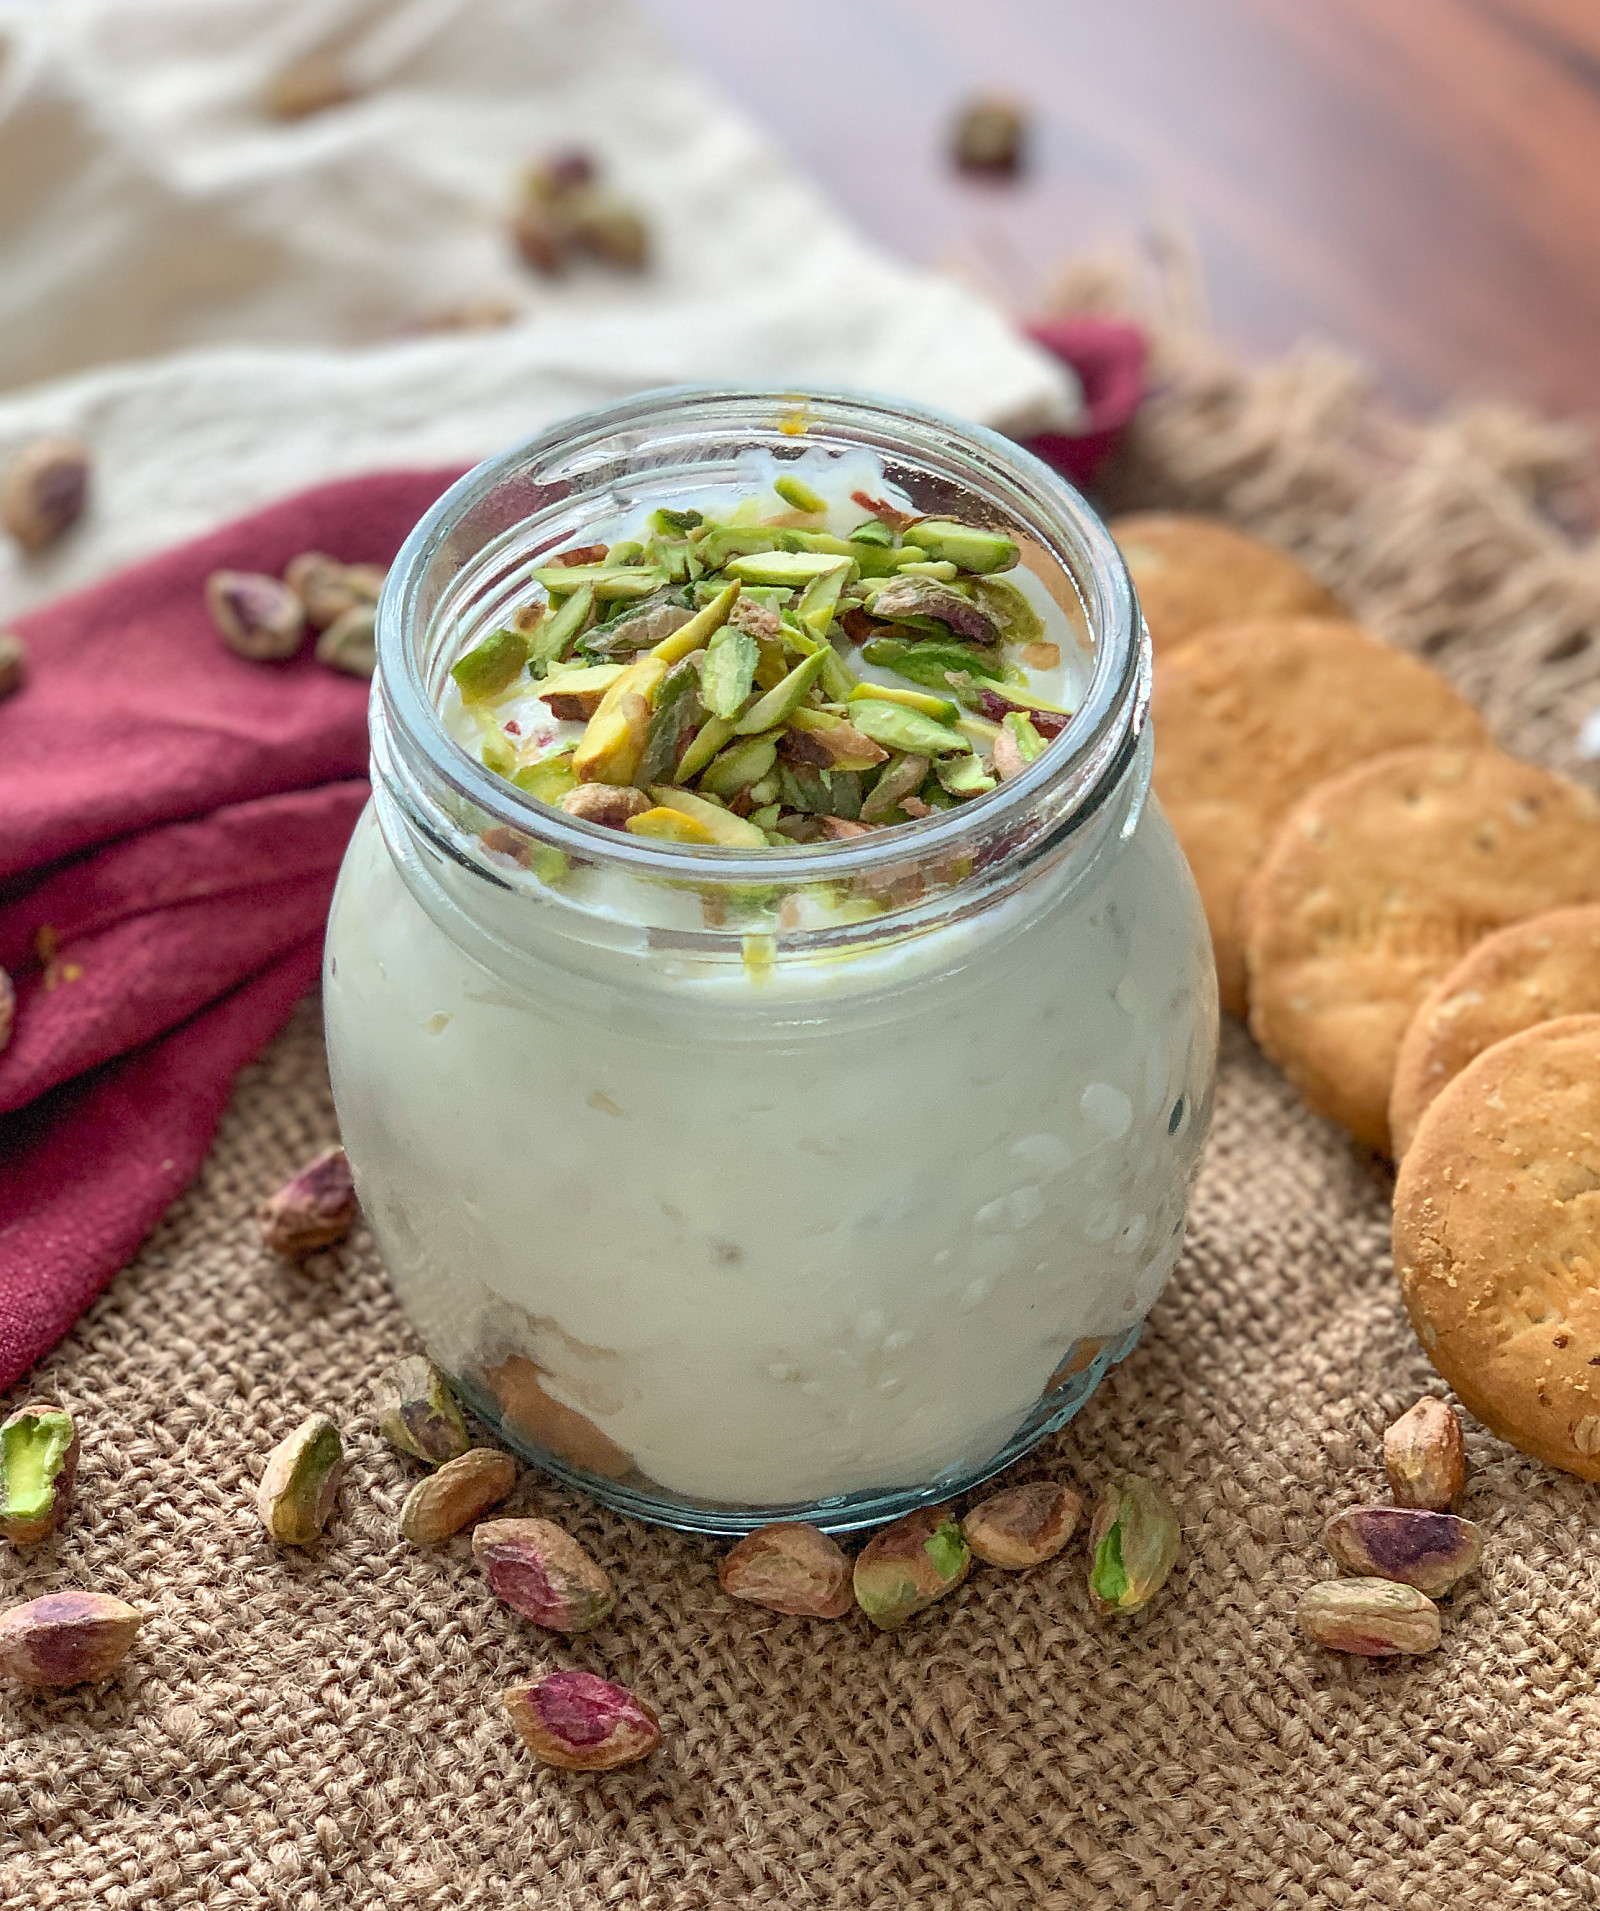 Banana Digestive Pudding Recipe With Pistachios